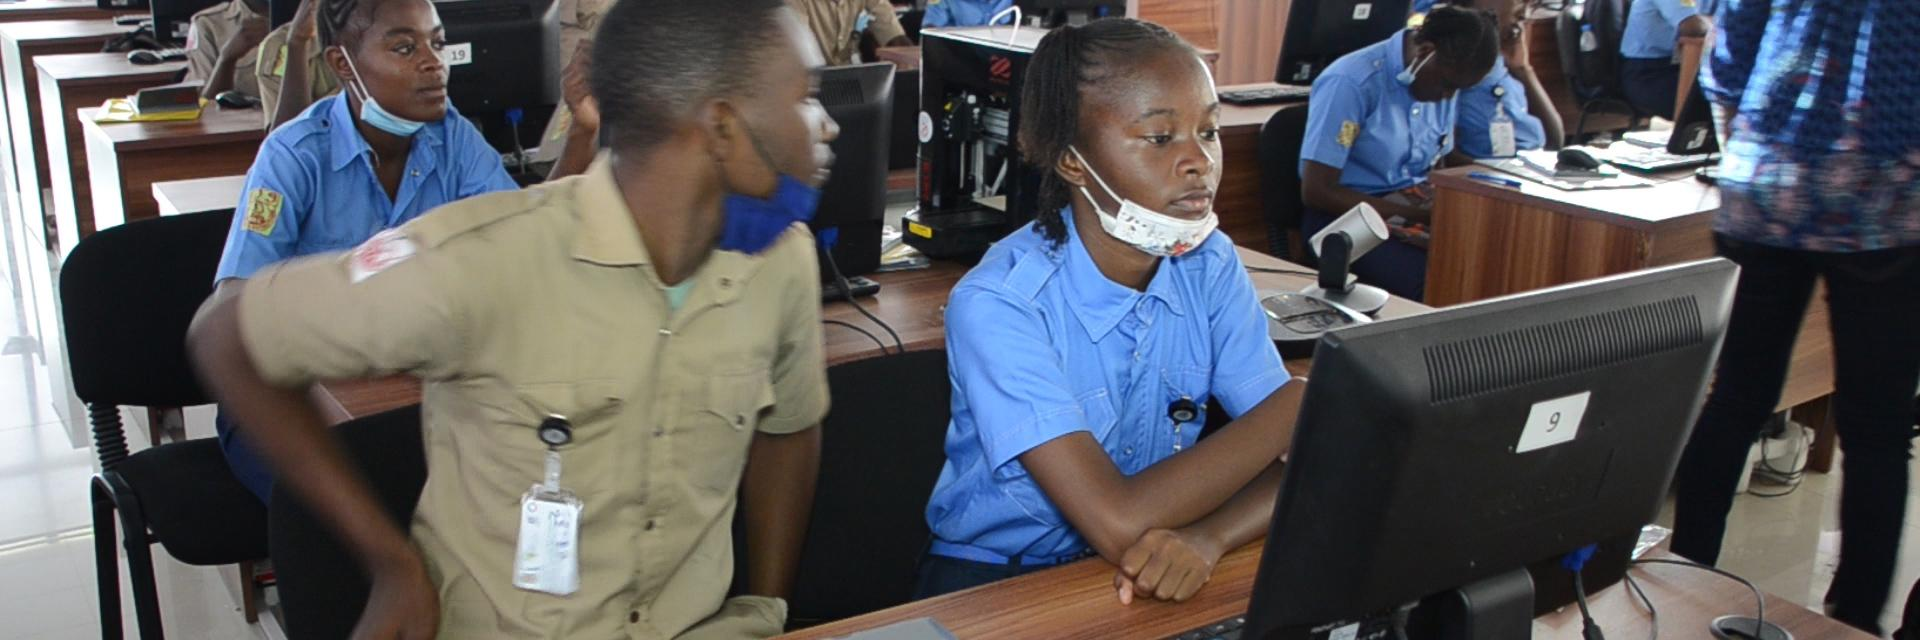 Young Africans create software thanks to UN bootcamp